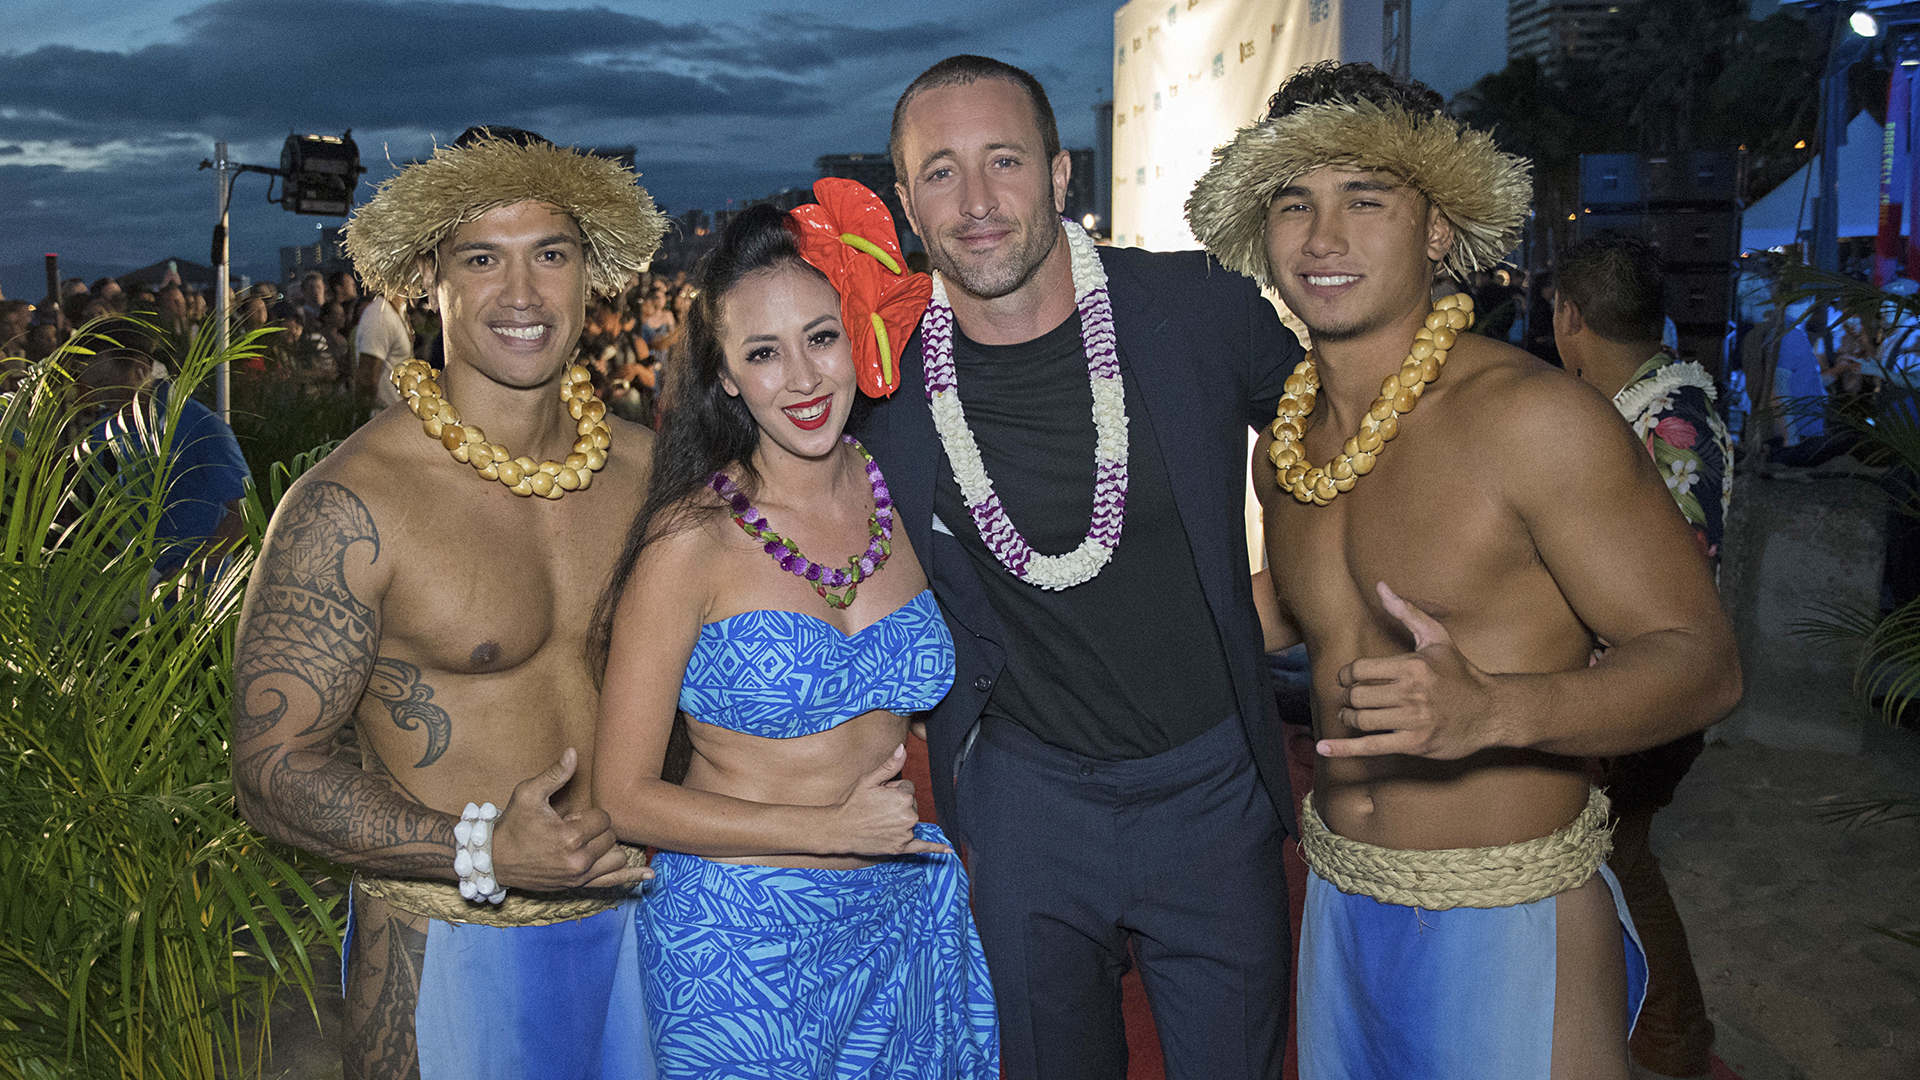 Alex O'Loughlin poses alongside a group dressed up for the festivities.